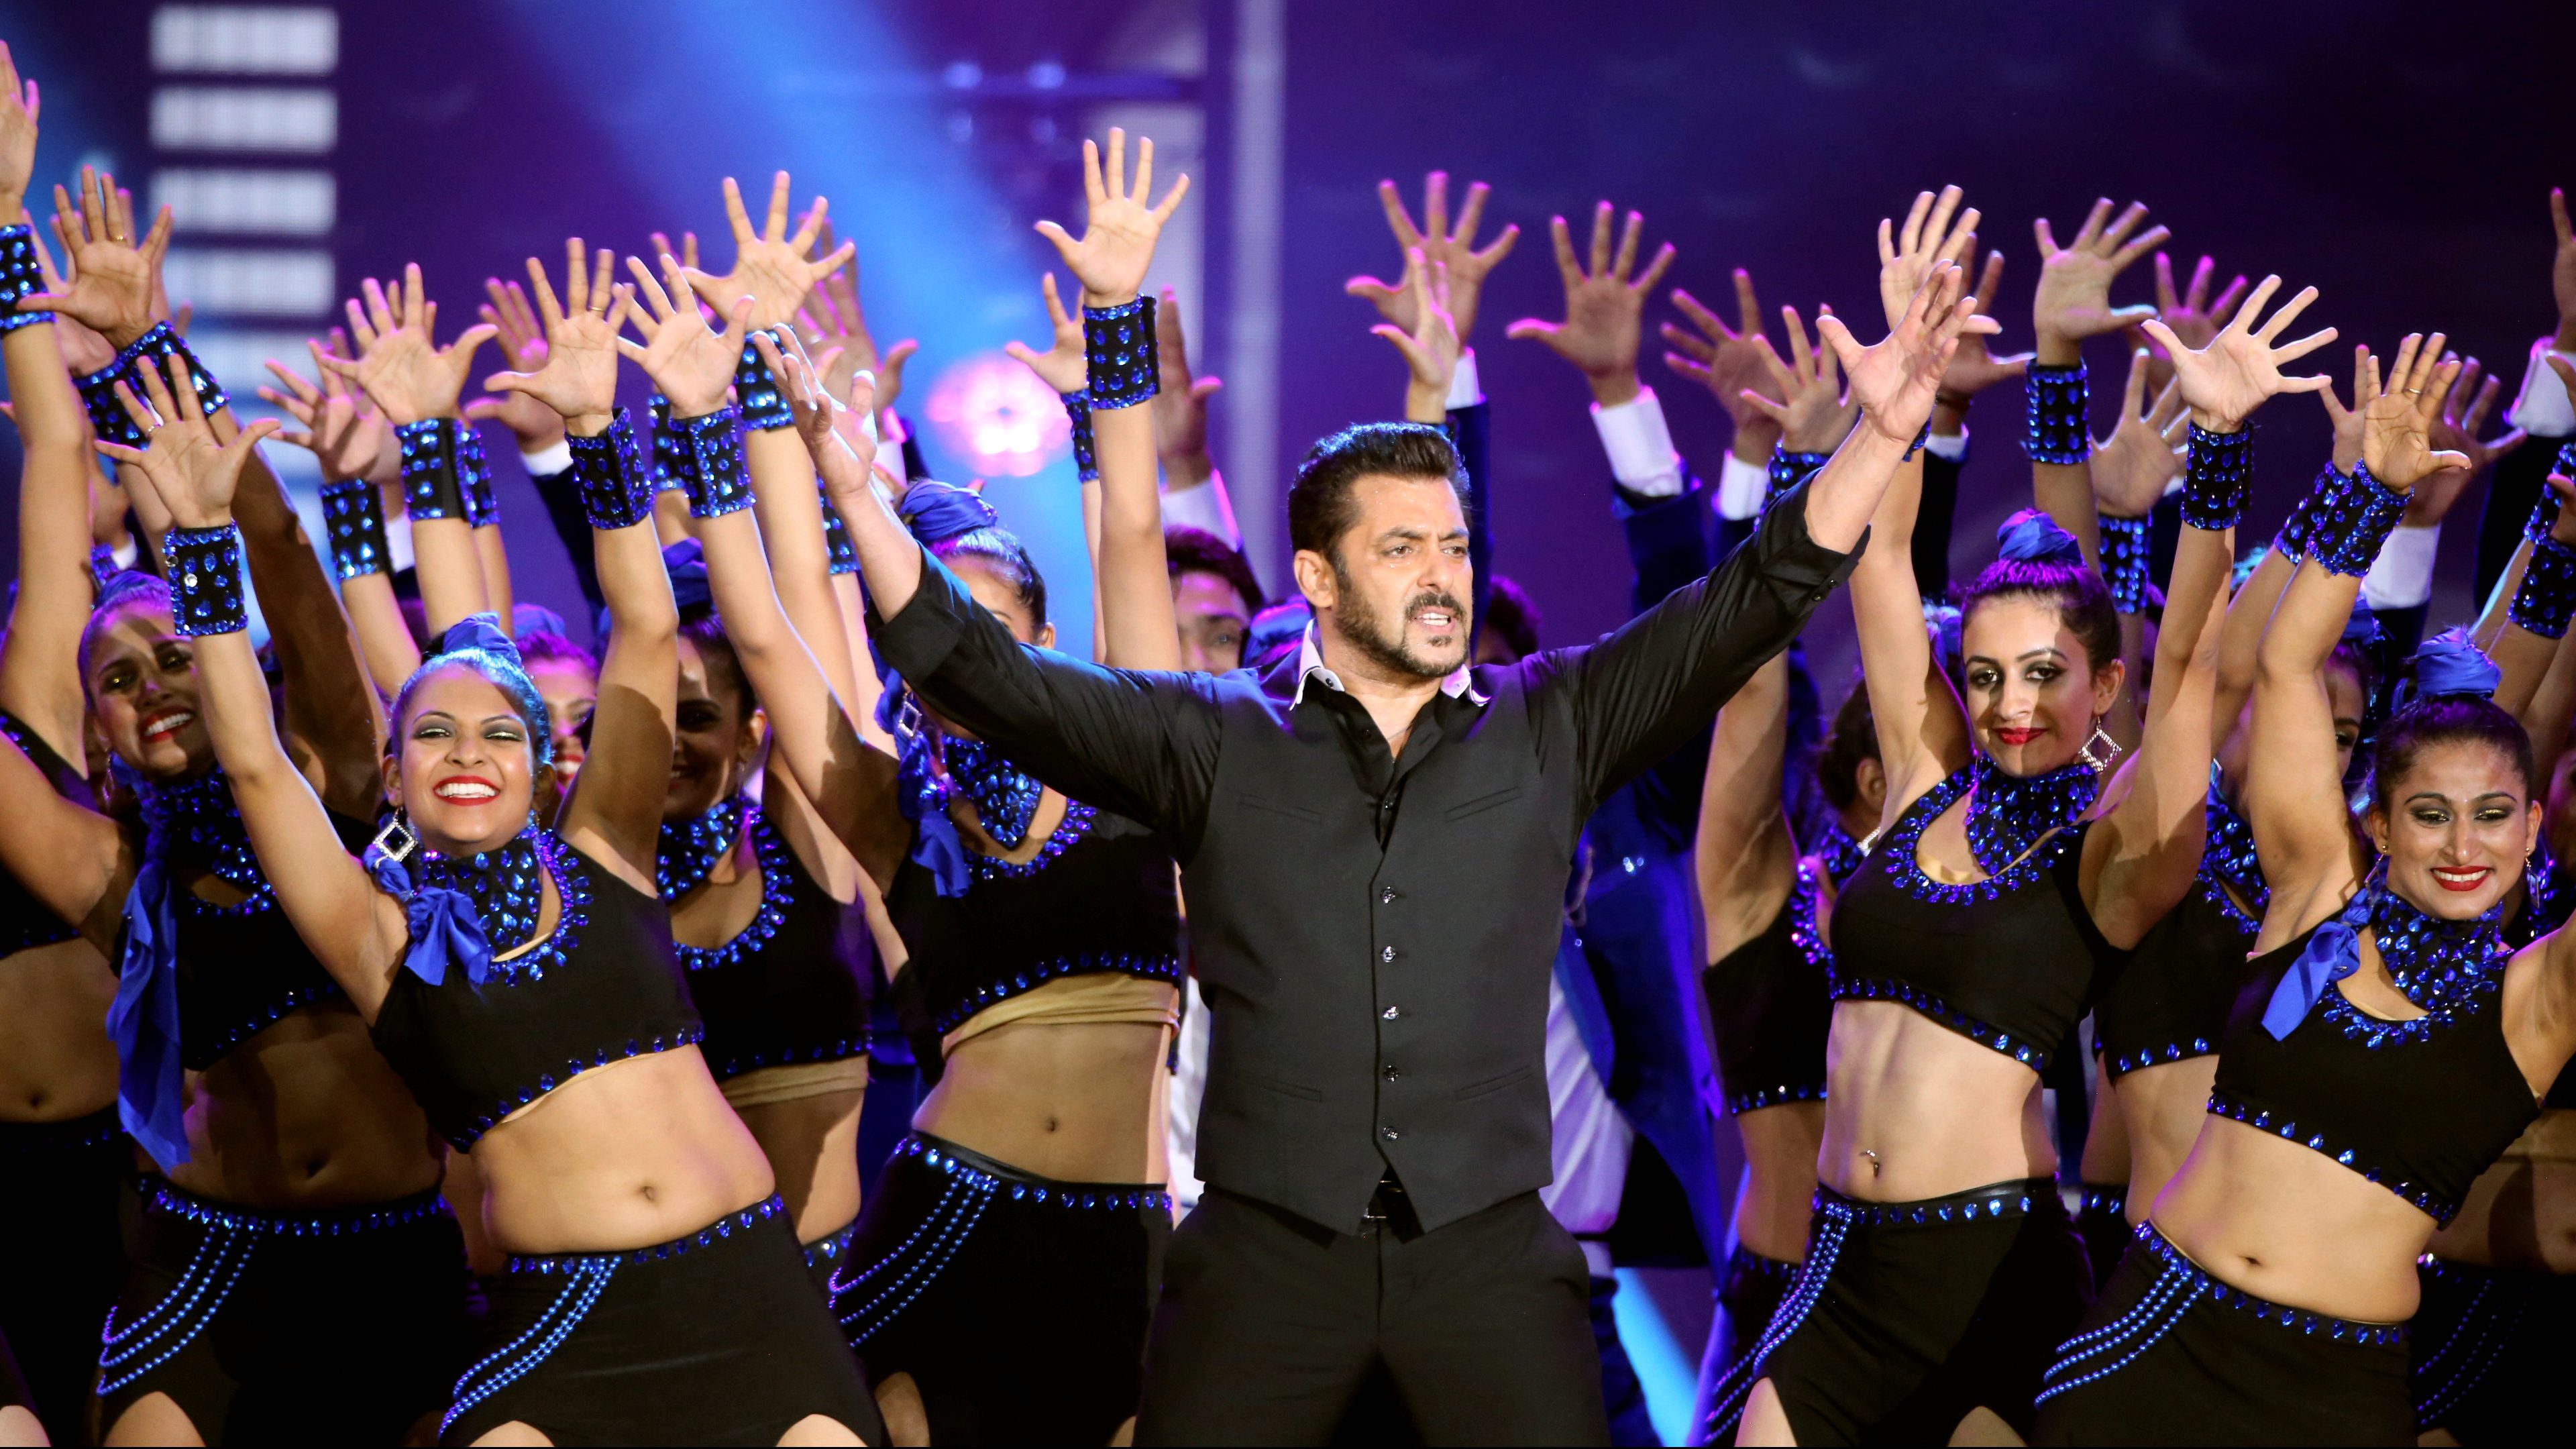 Actor Salman Khan performs at the International Indian Film Academy Awards (IIFA) show at MetLife Stadium in East Rutherford, New Jersey, U.S., July 16, 2017. REUTERS/Joe Penney - RC1F9124D510